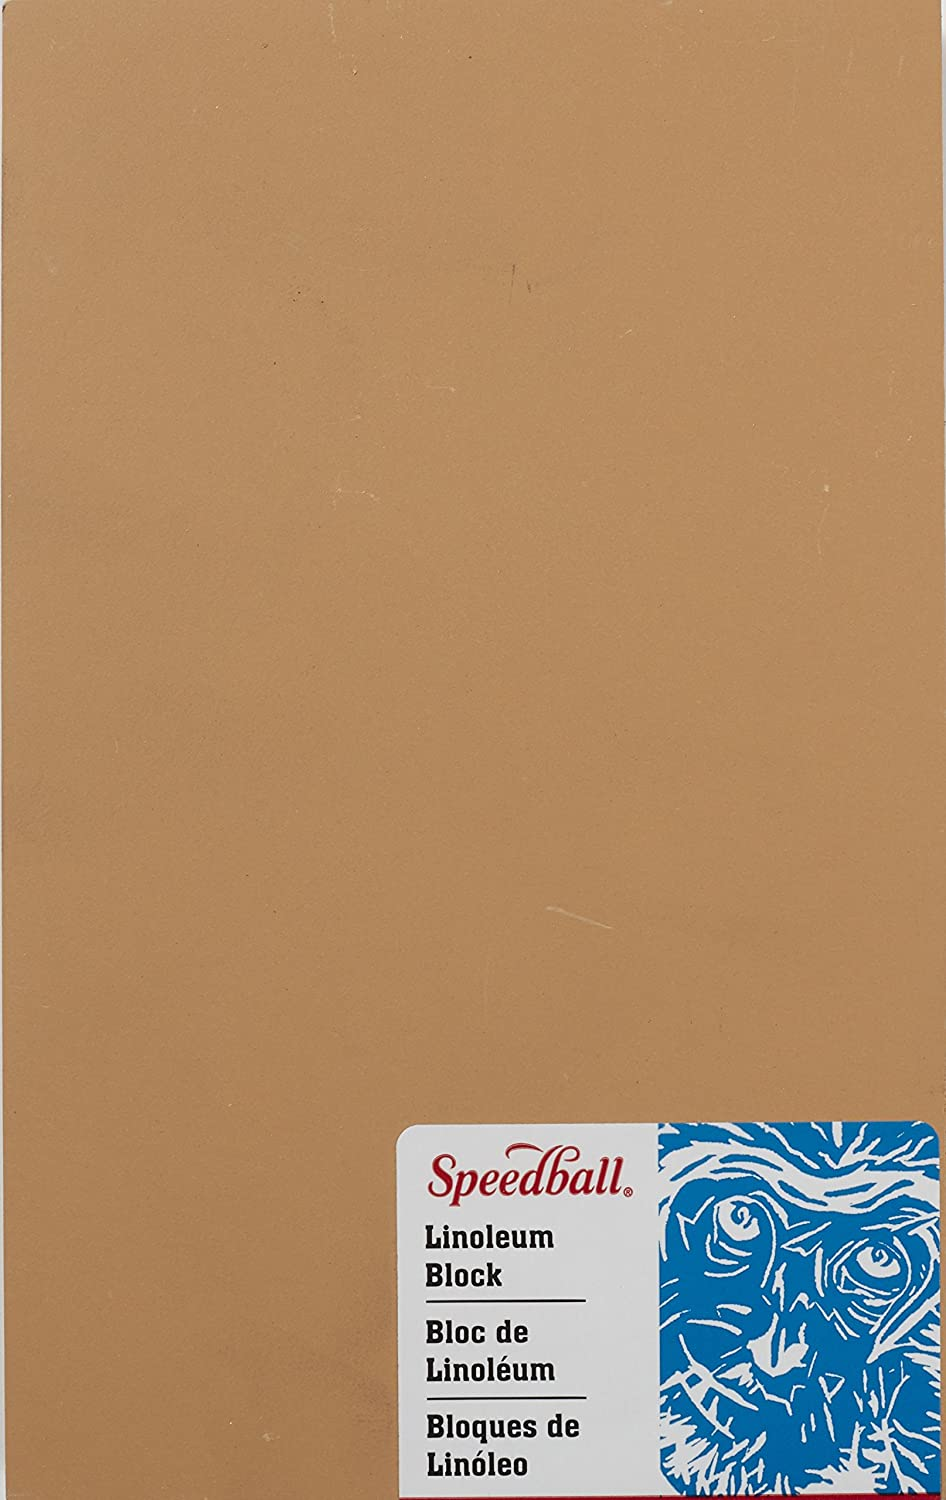 Speedball 4303 Premium Mounted Linoleum Block – Fine, Flat Surface for Easy Carving, Smoky Tan, 2 x 3 Inches School Specialty 410852